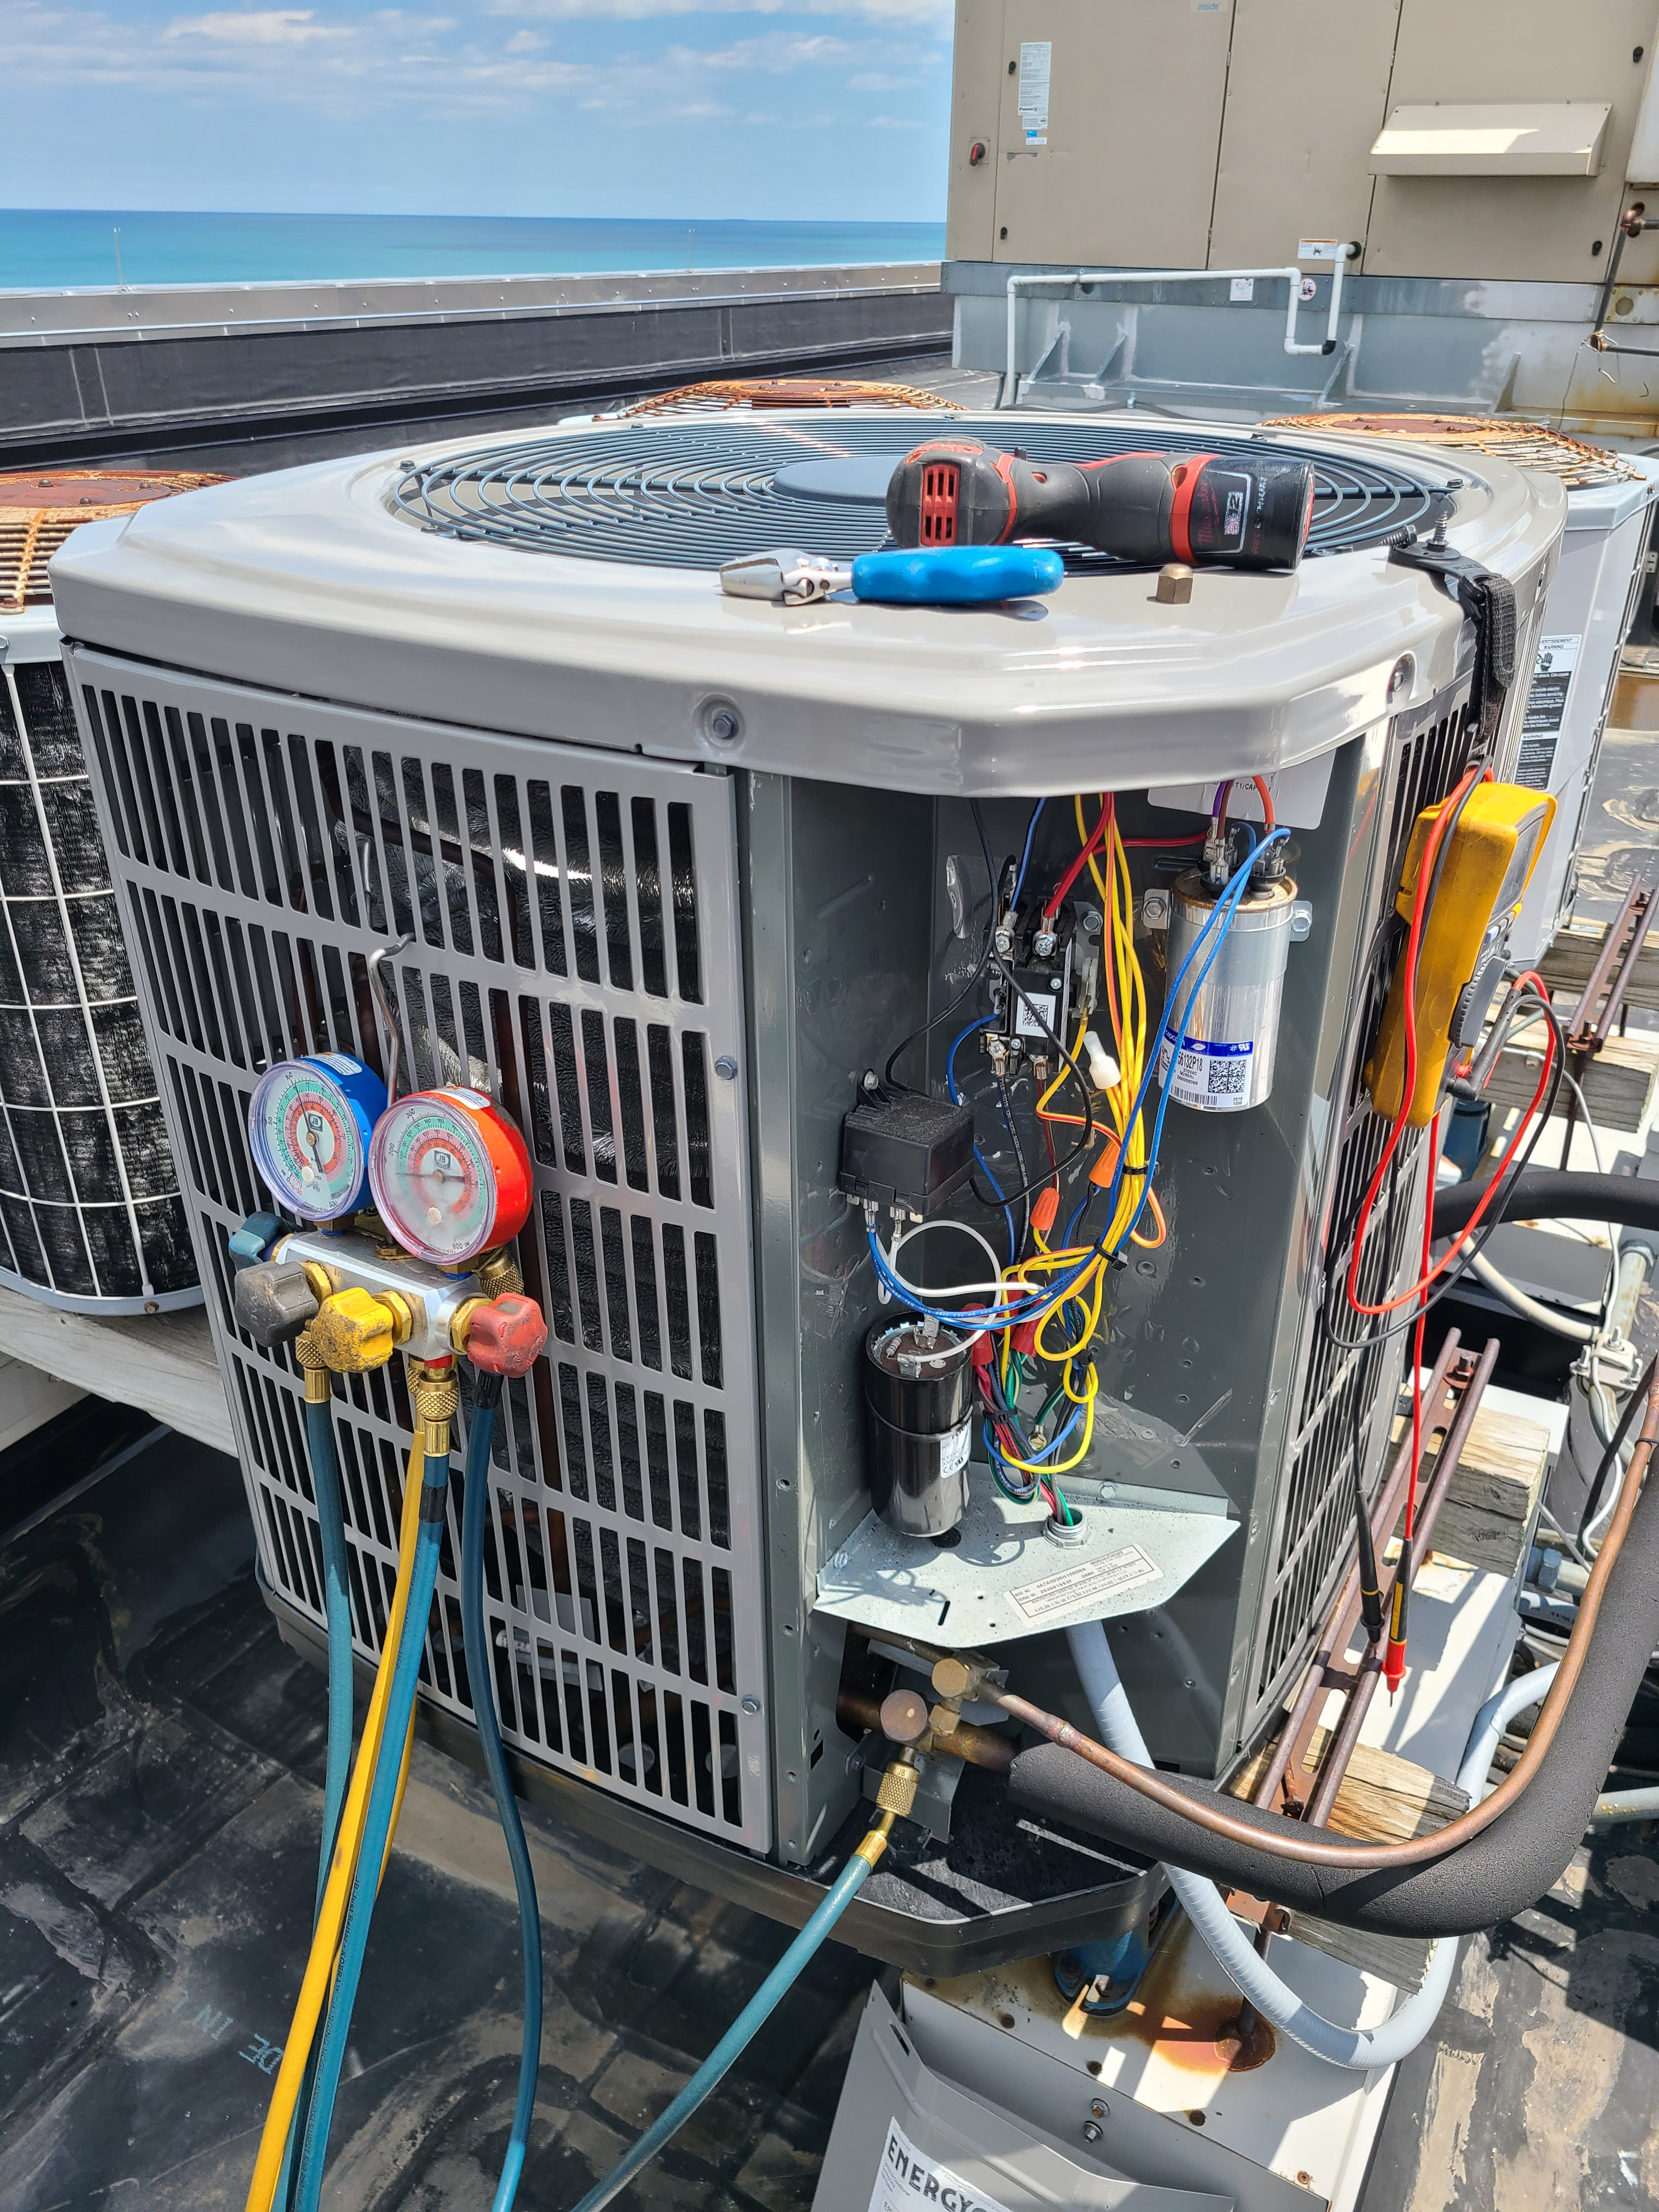 American Standard summer ac clean and check. System tuned up and ready for summer.